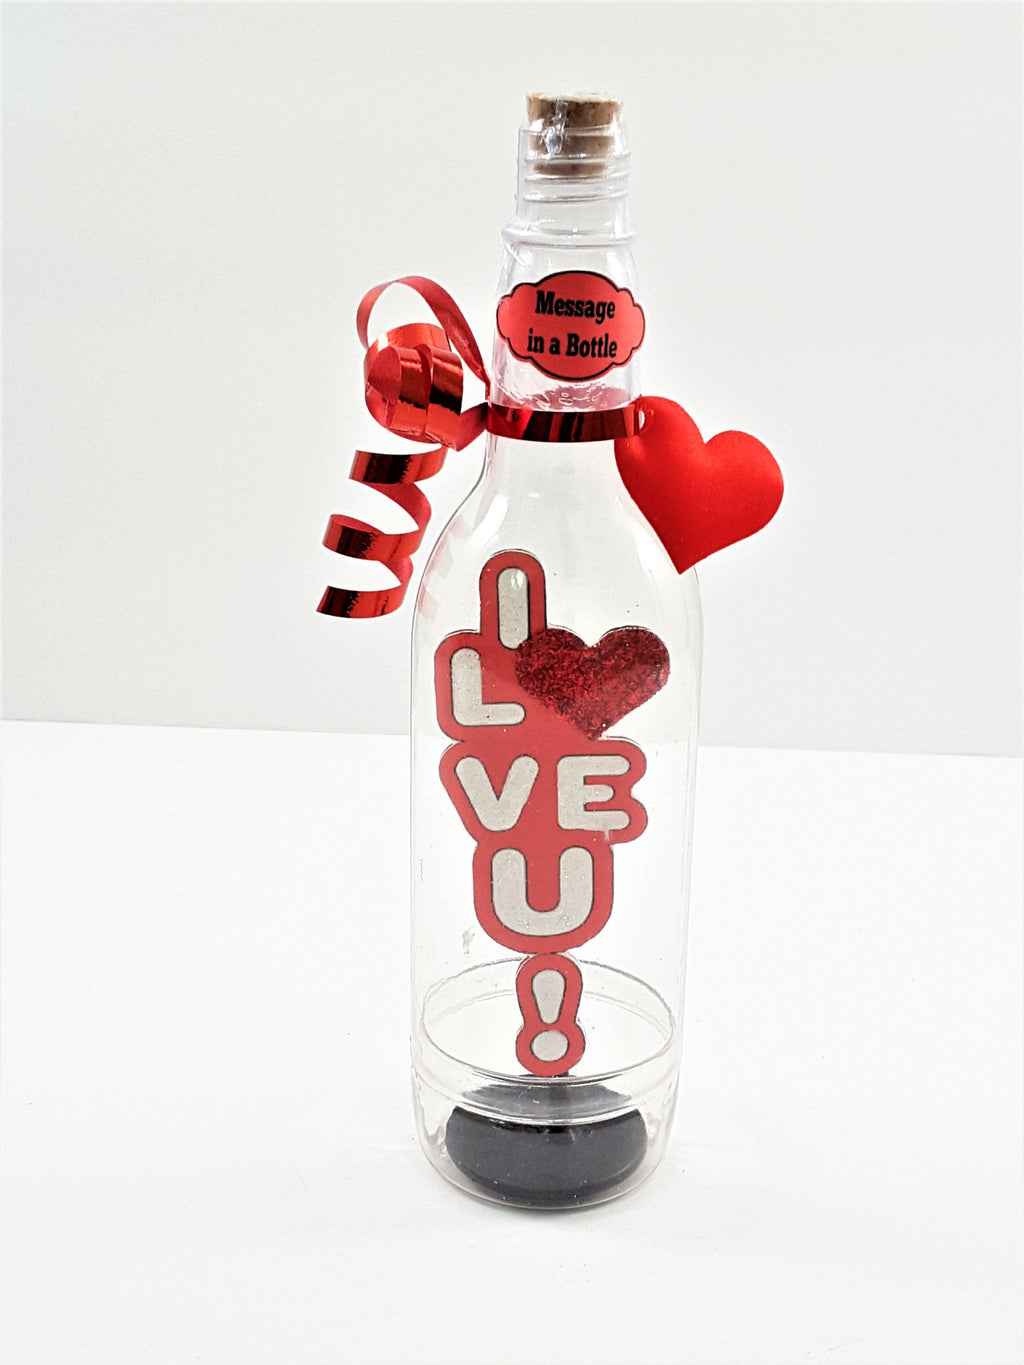 I Love U! Message in a Bottle - TheLastWordBish.com